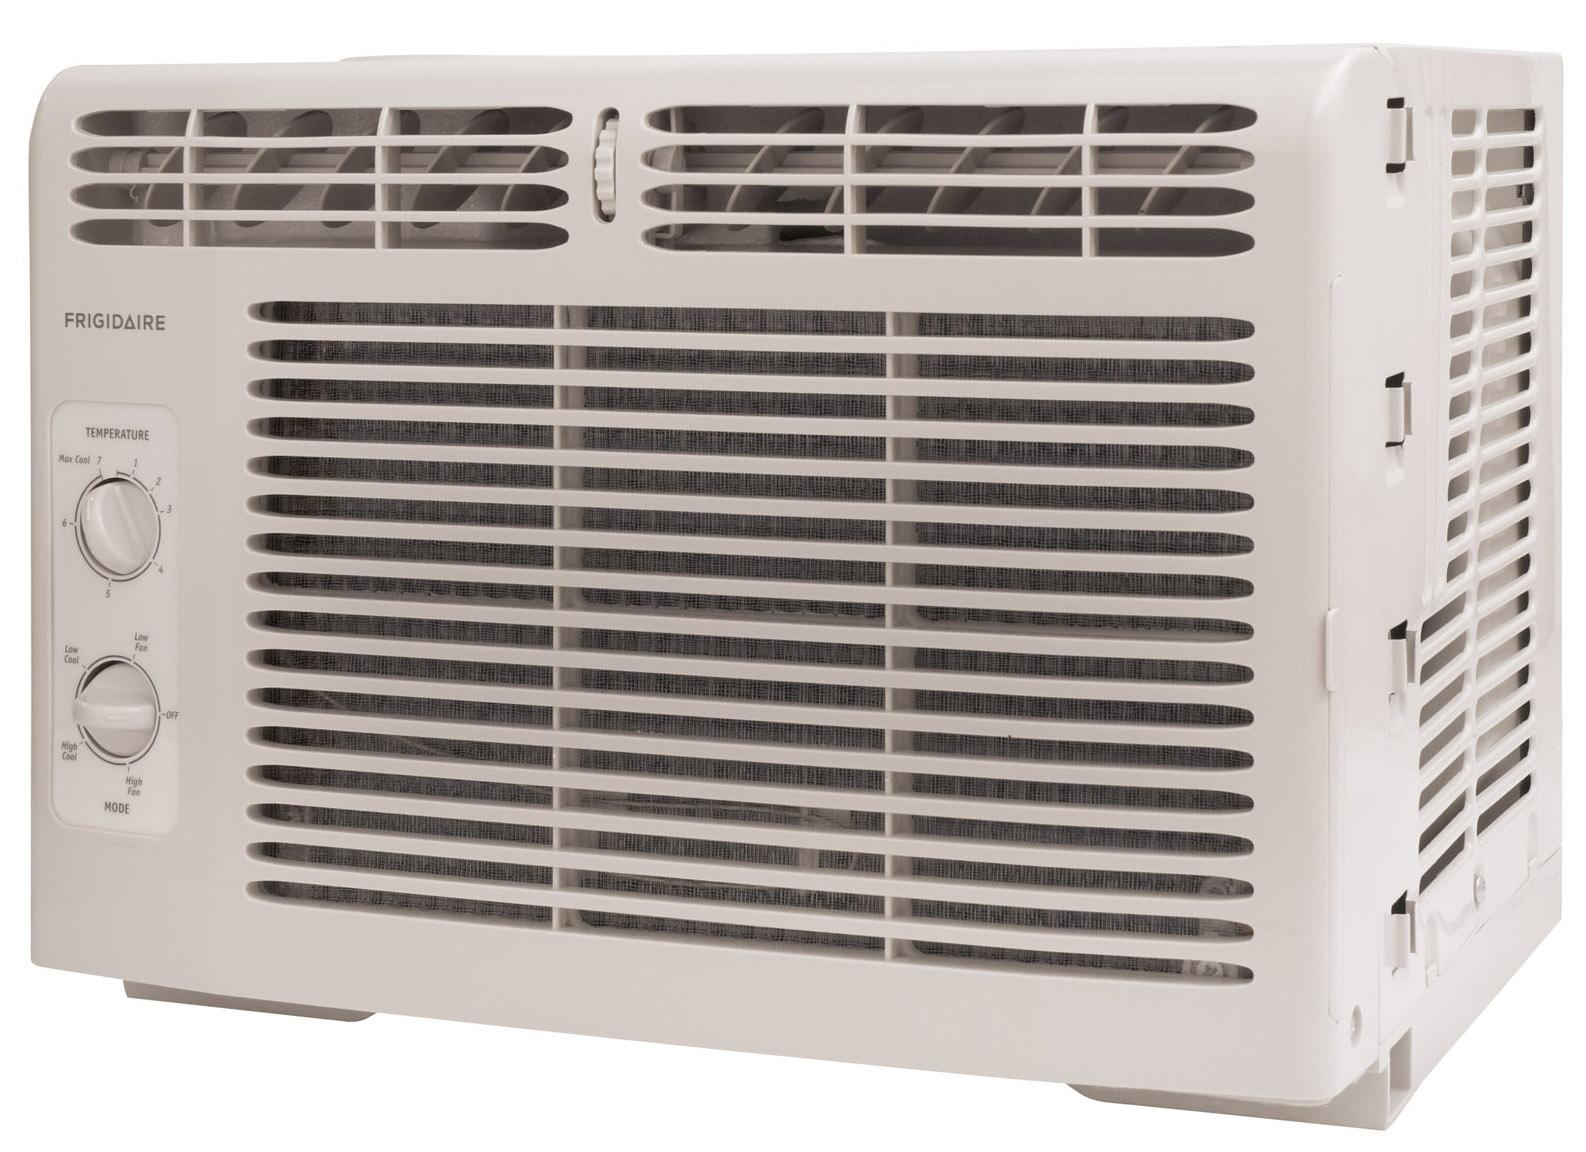 FRA052XT7 Frigidaire fra052xt7 Window/Wall Air Conditioners #736058